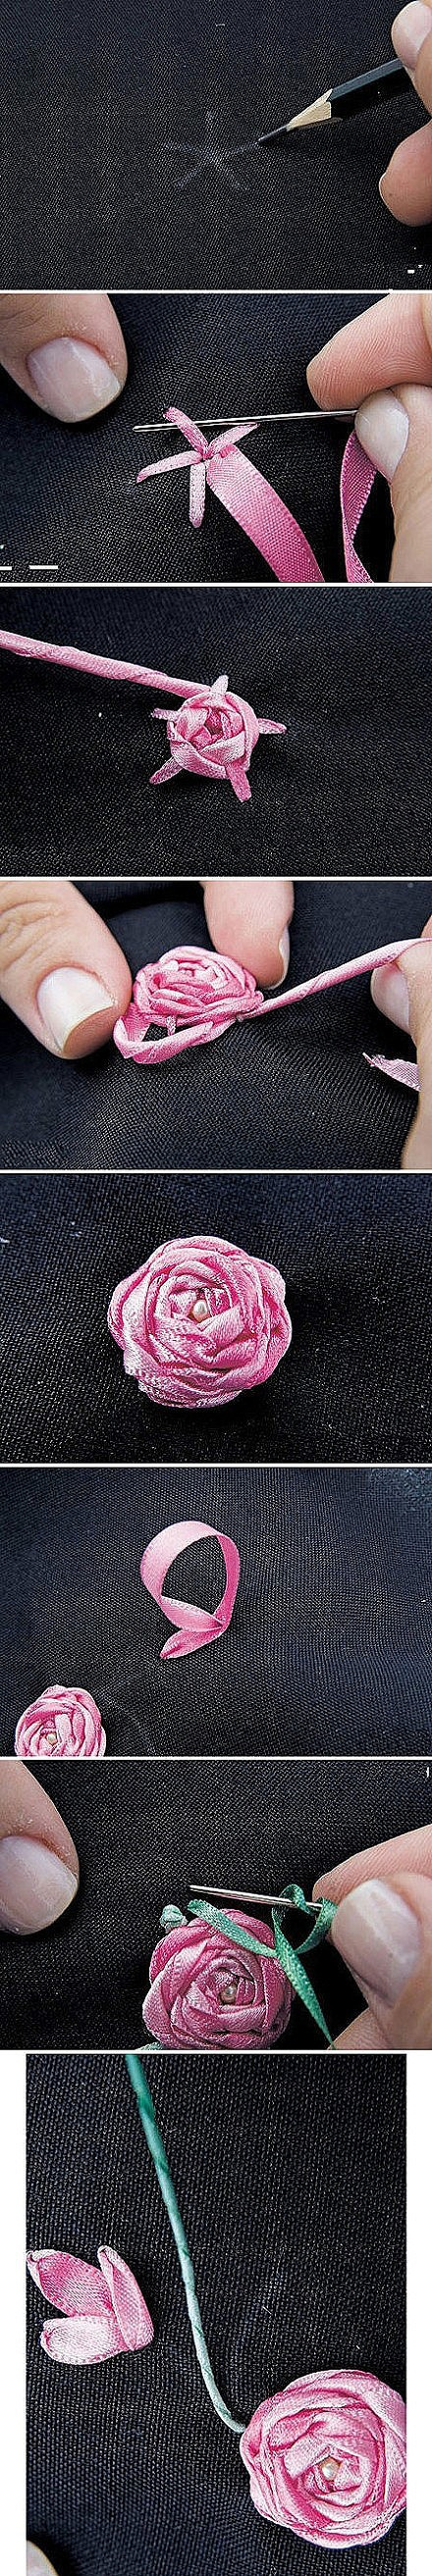 Embroidery ribbon roses